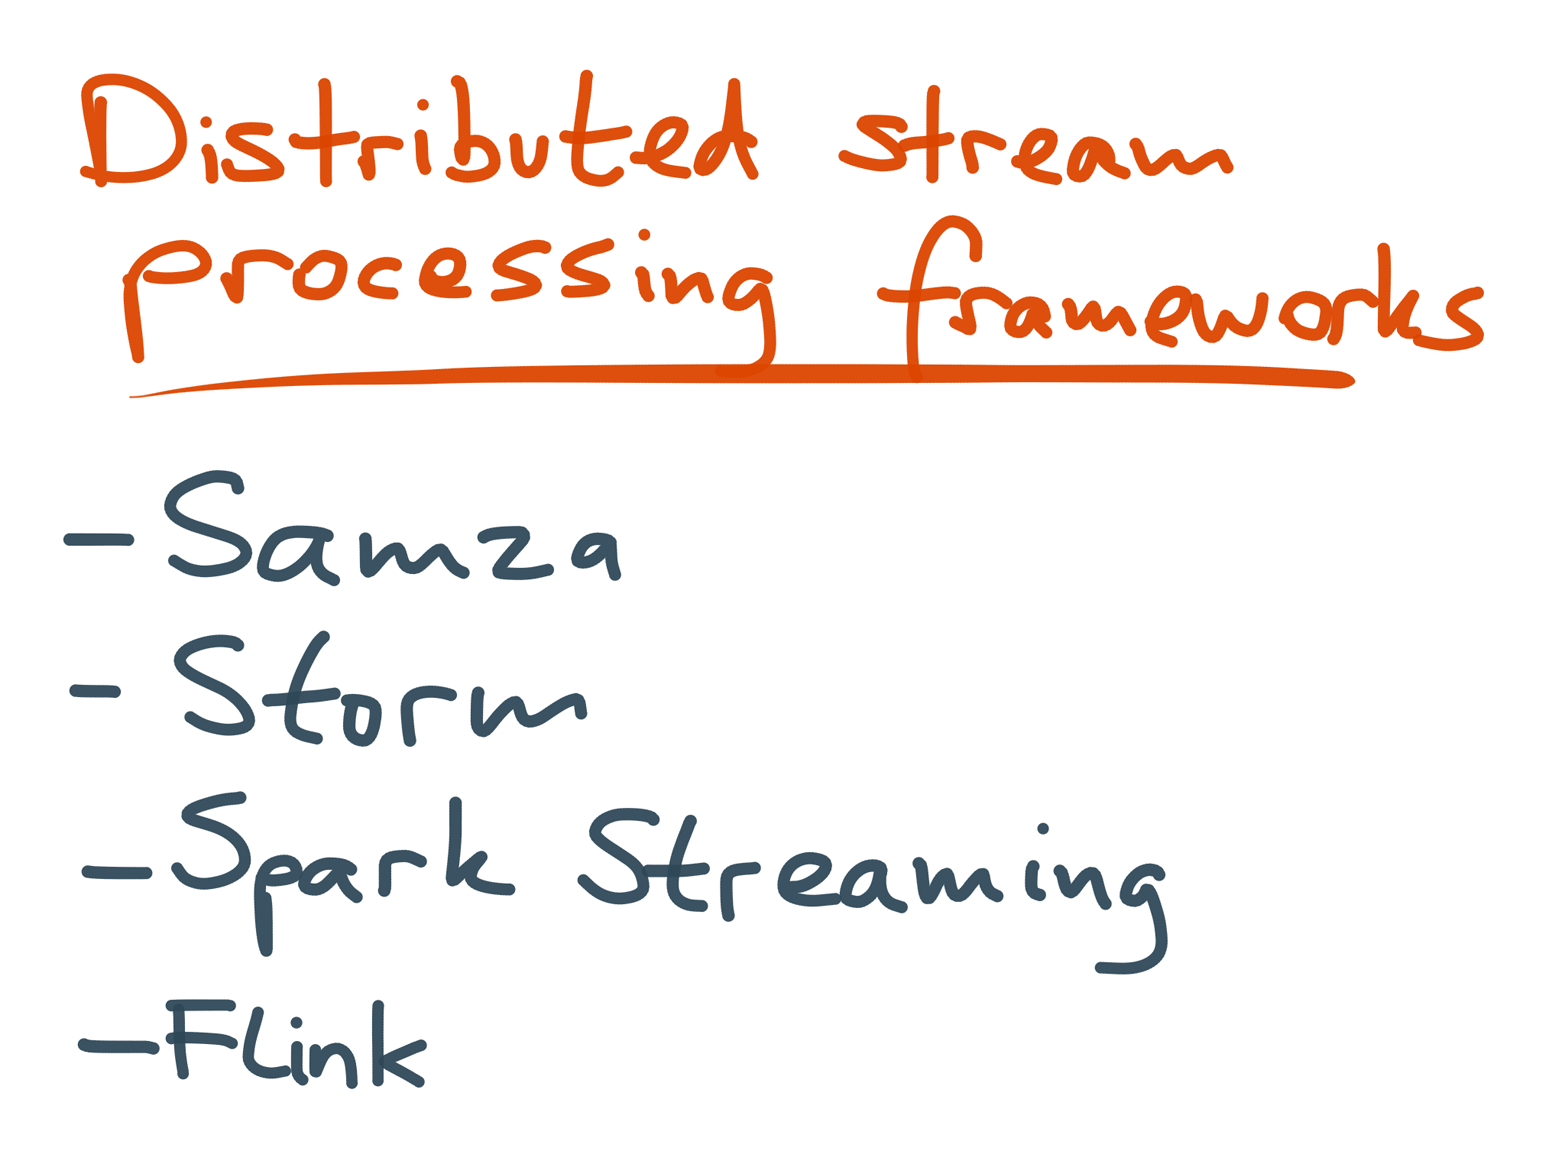 List of distributed stream processing frameworks.